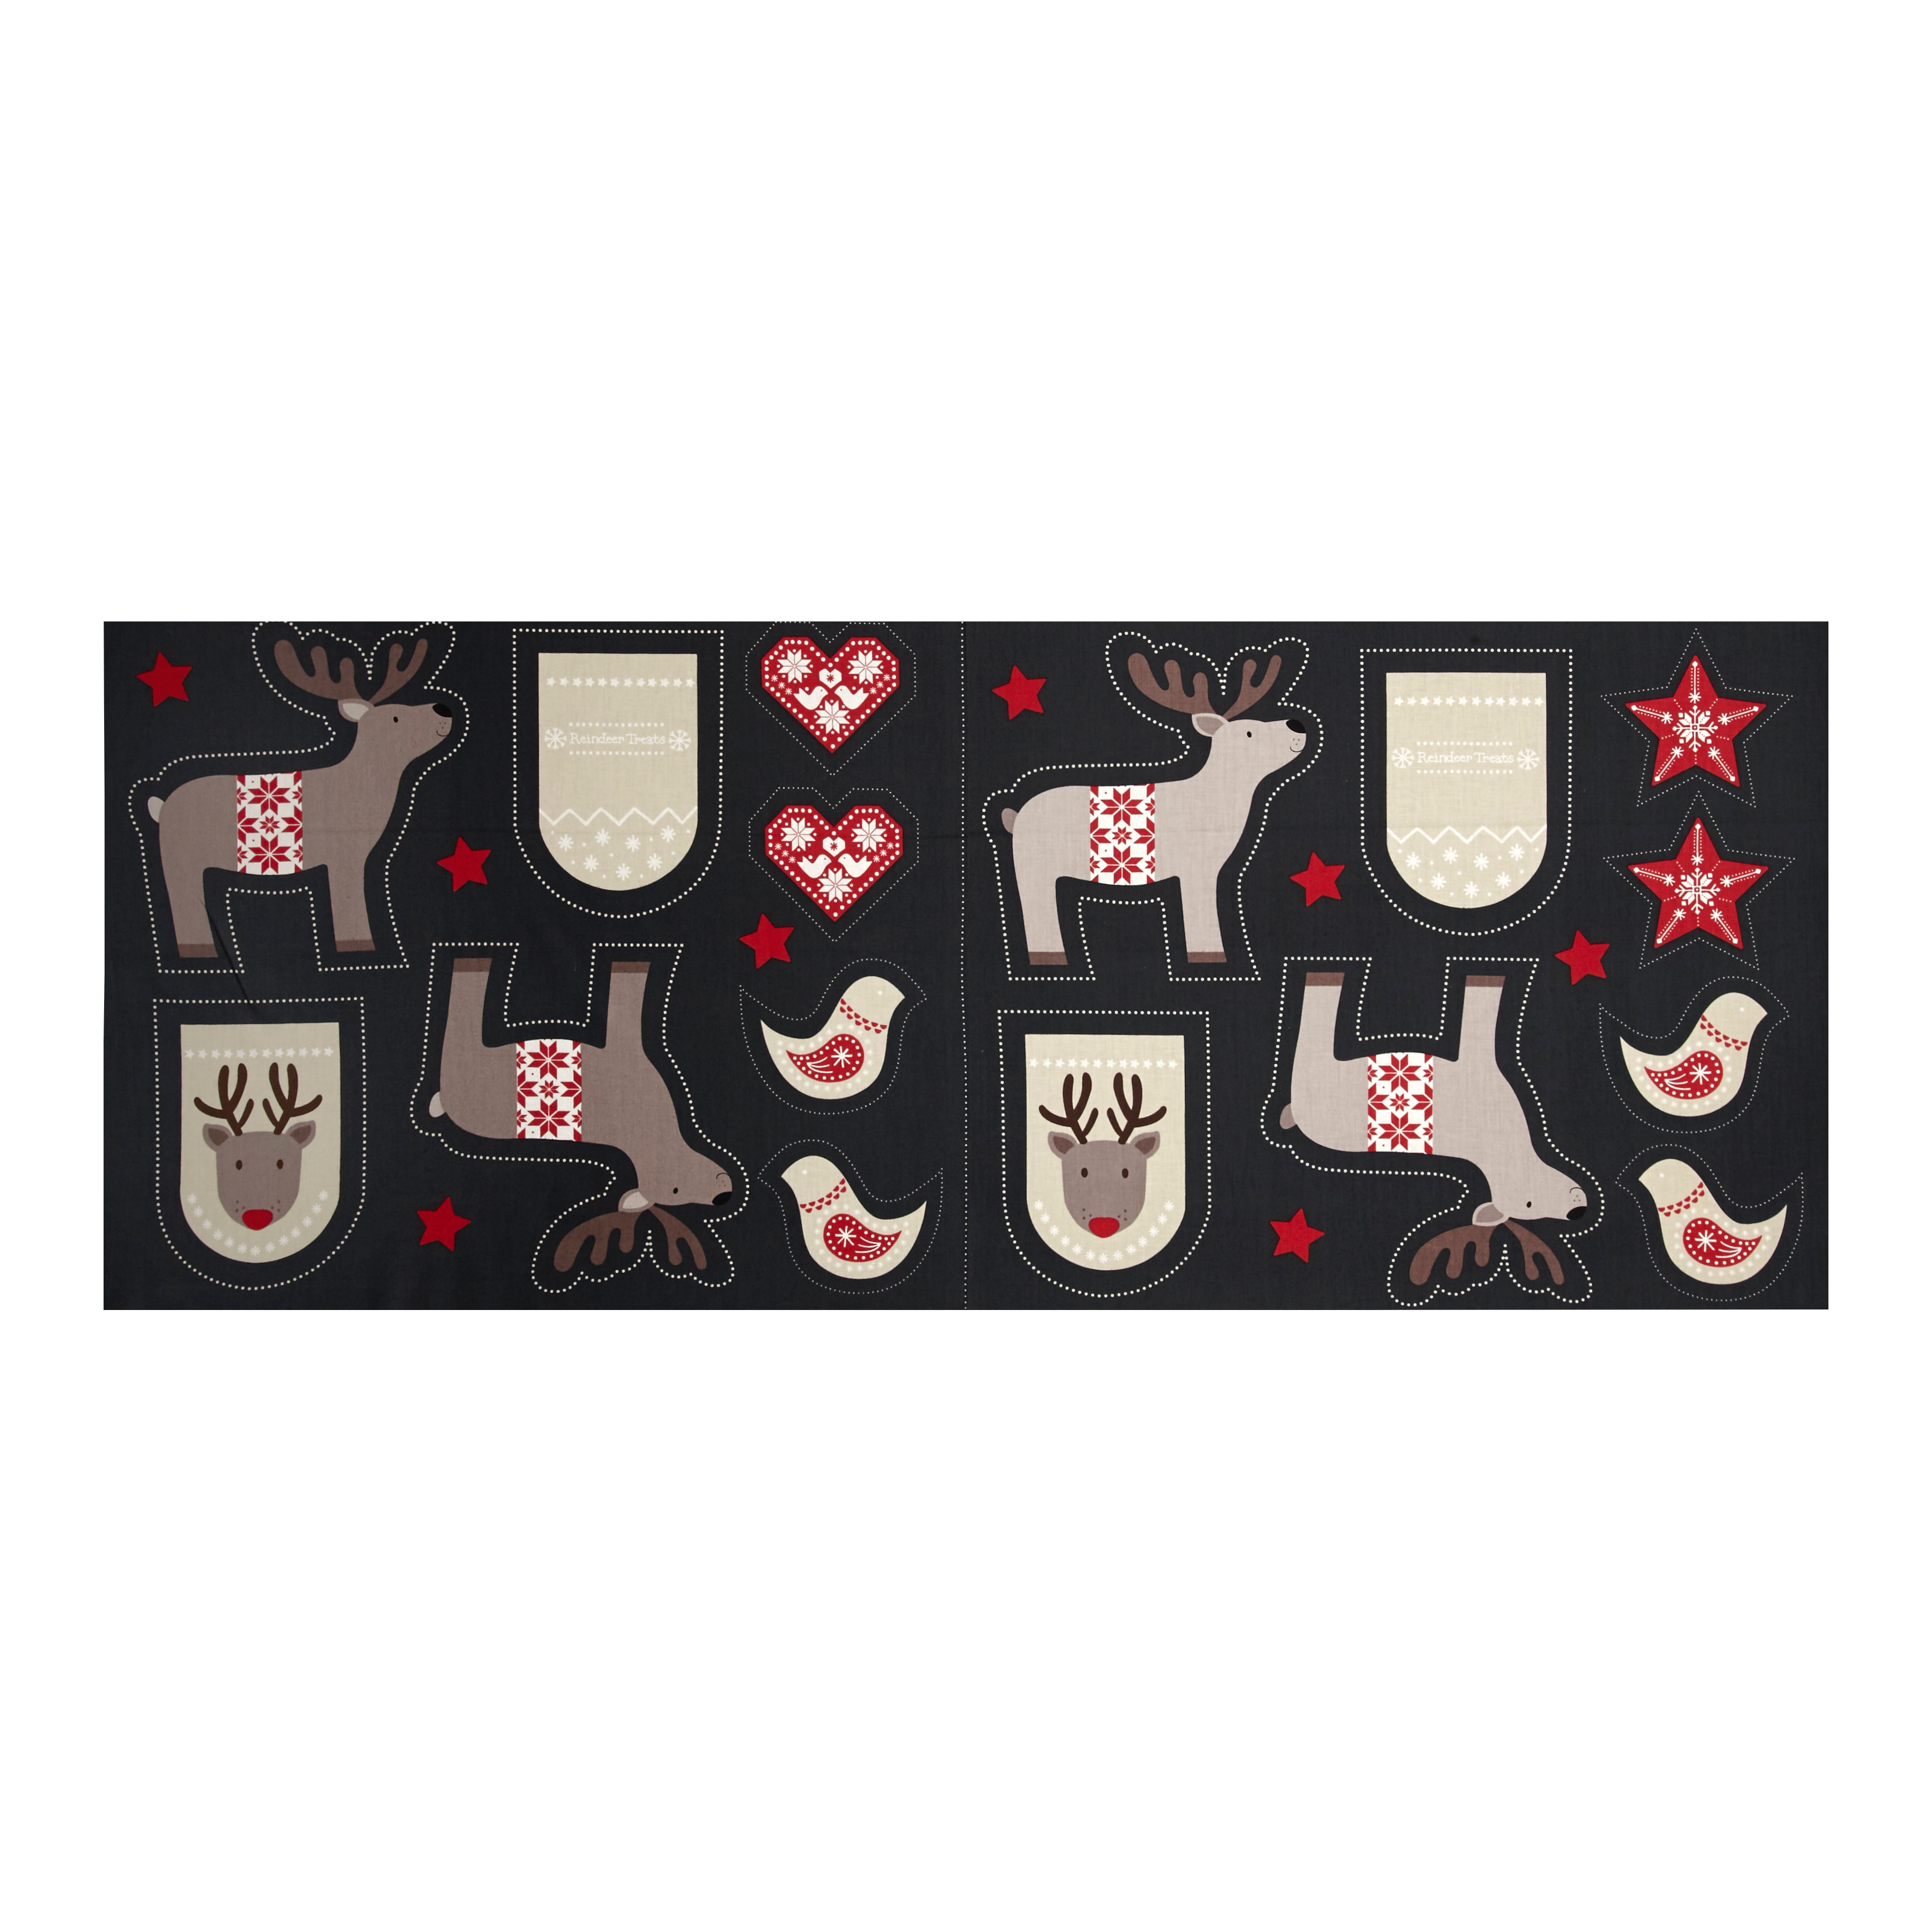 When I Met Santa's Reindeer Ornament 18 In. Panel Black Fabric by E. E. Schenck in USA